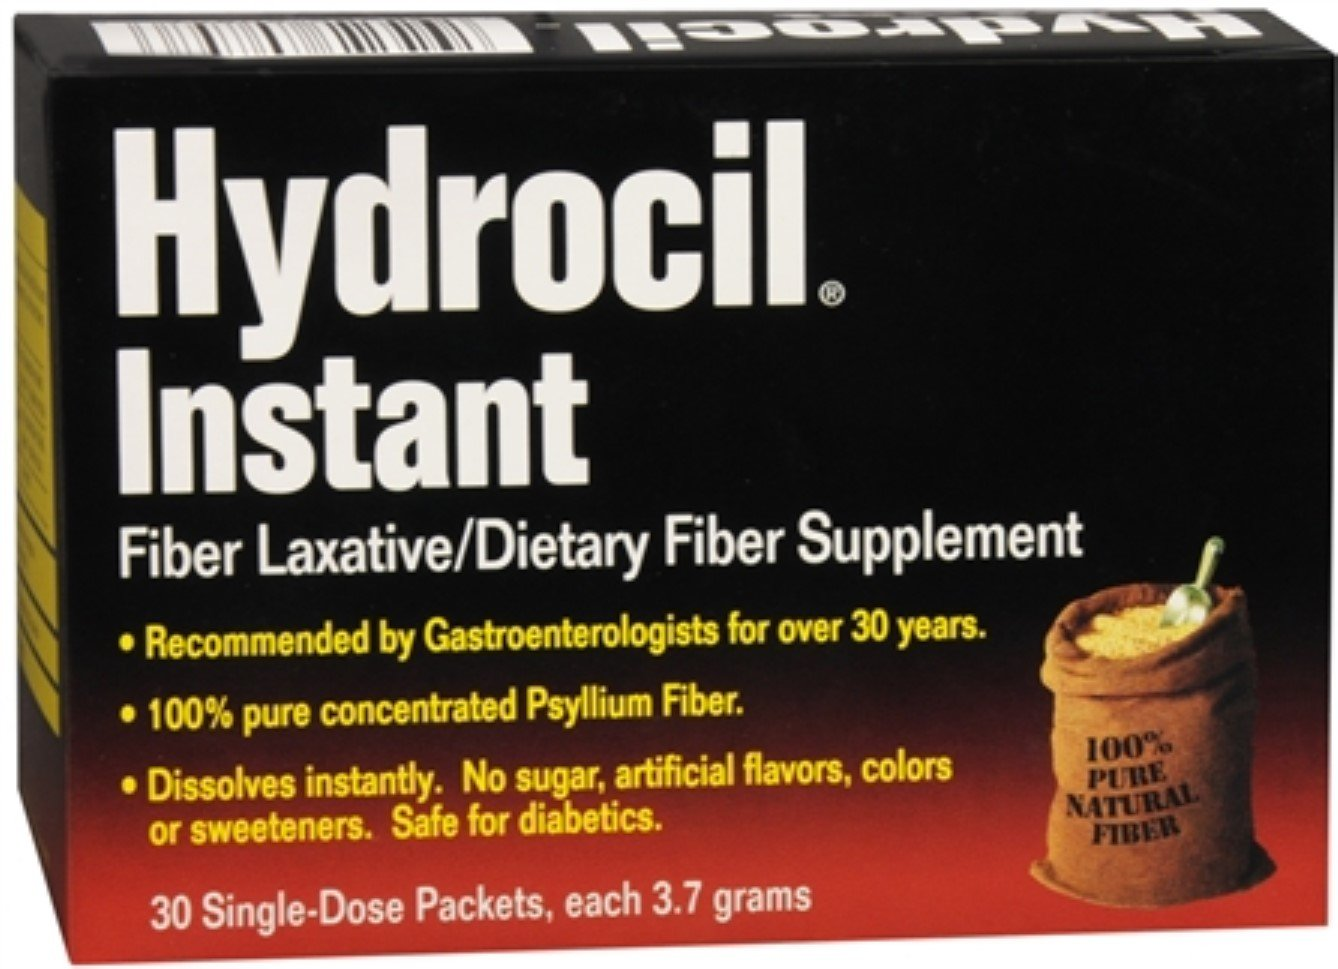 Hydrocil Instant Fiber Laxative Packets 30 Each (Pack of 7)